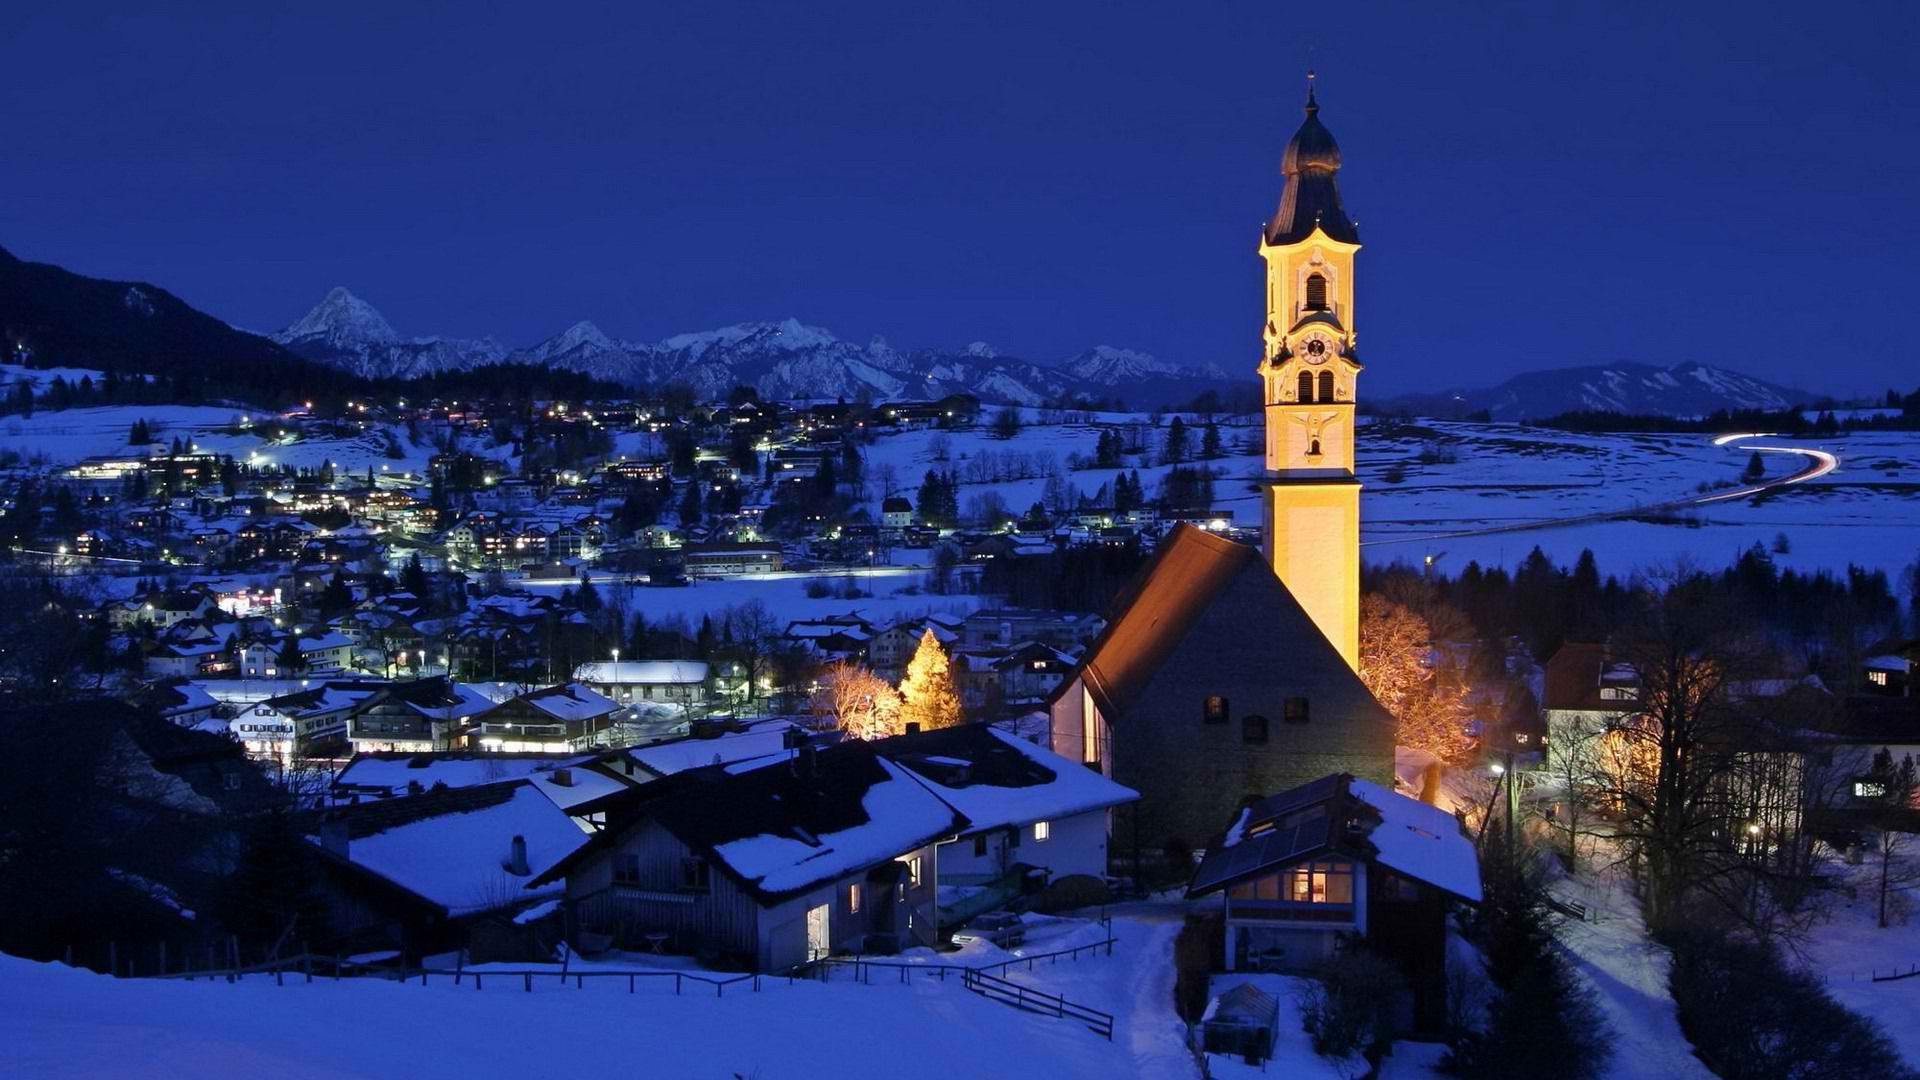 Christmas In The Alps Village In The Alps Germany Wallpaper 569291 Ferry Building San Francisco Tourism Germany